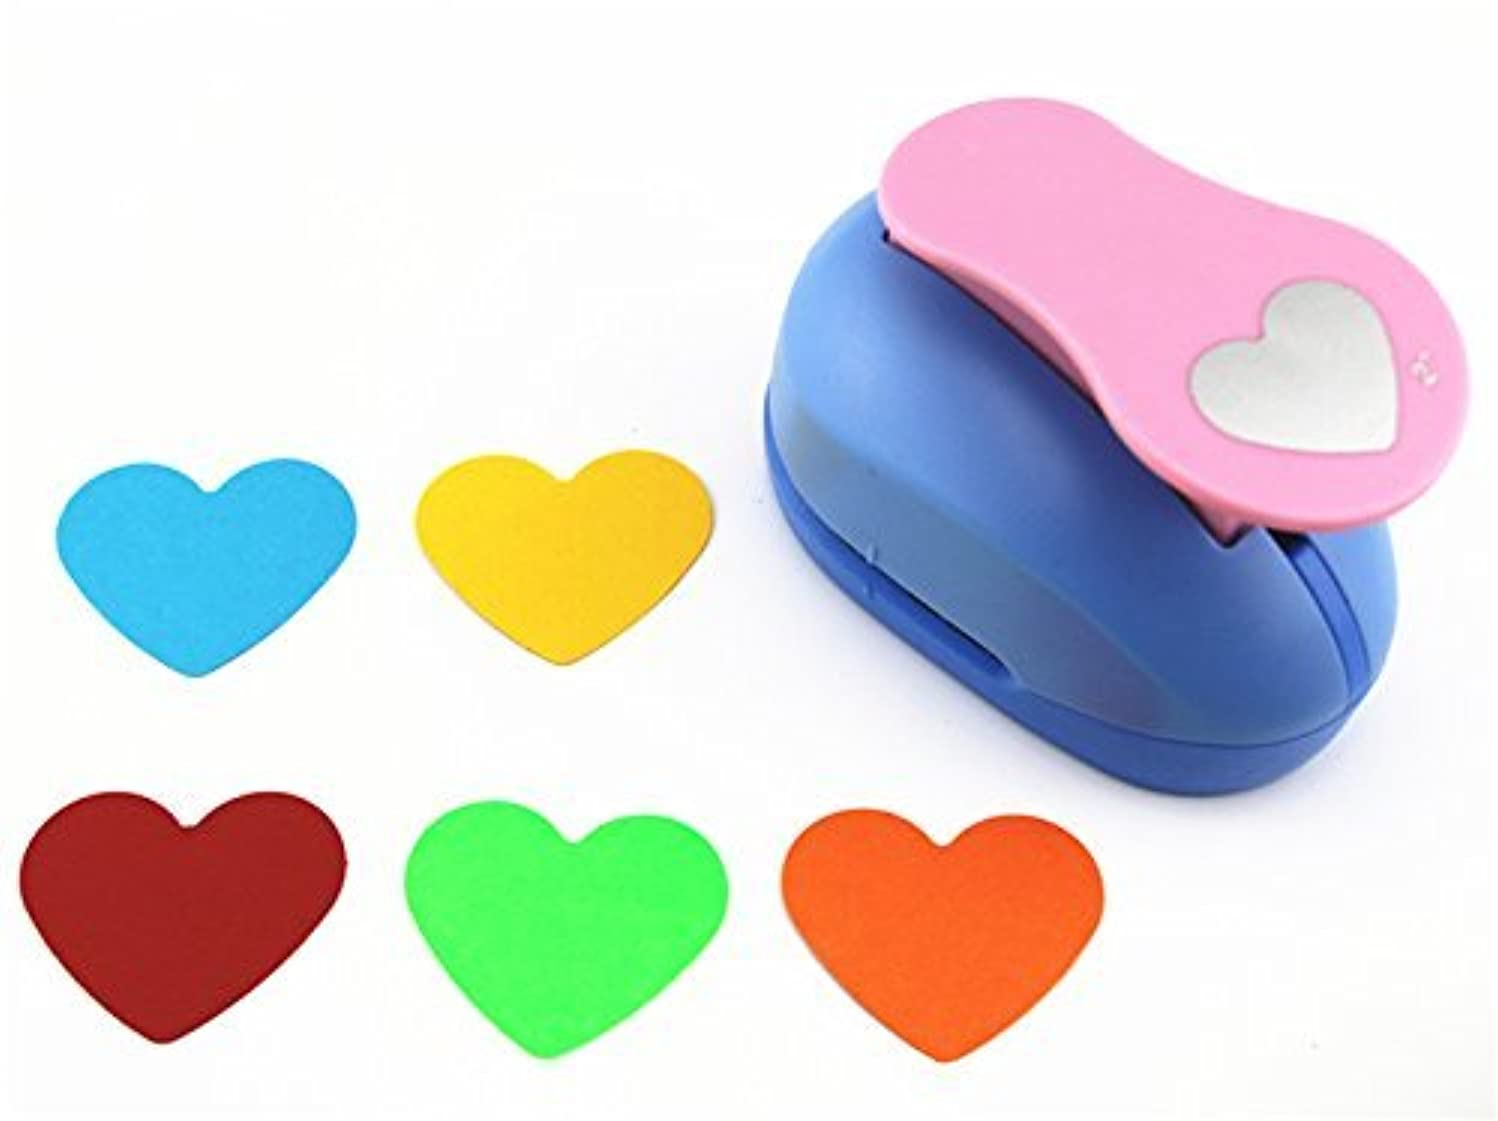 CADY Clever Lever Craft Punch 2-Inch Paper Punches Paper Punch Heart